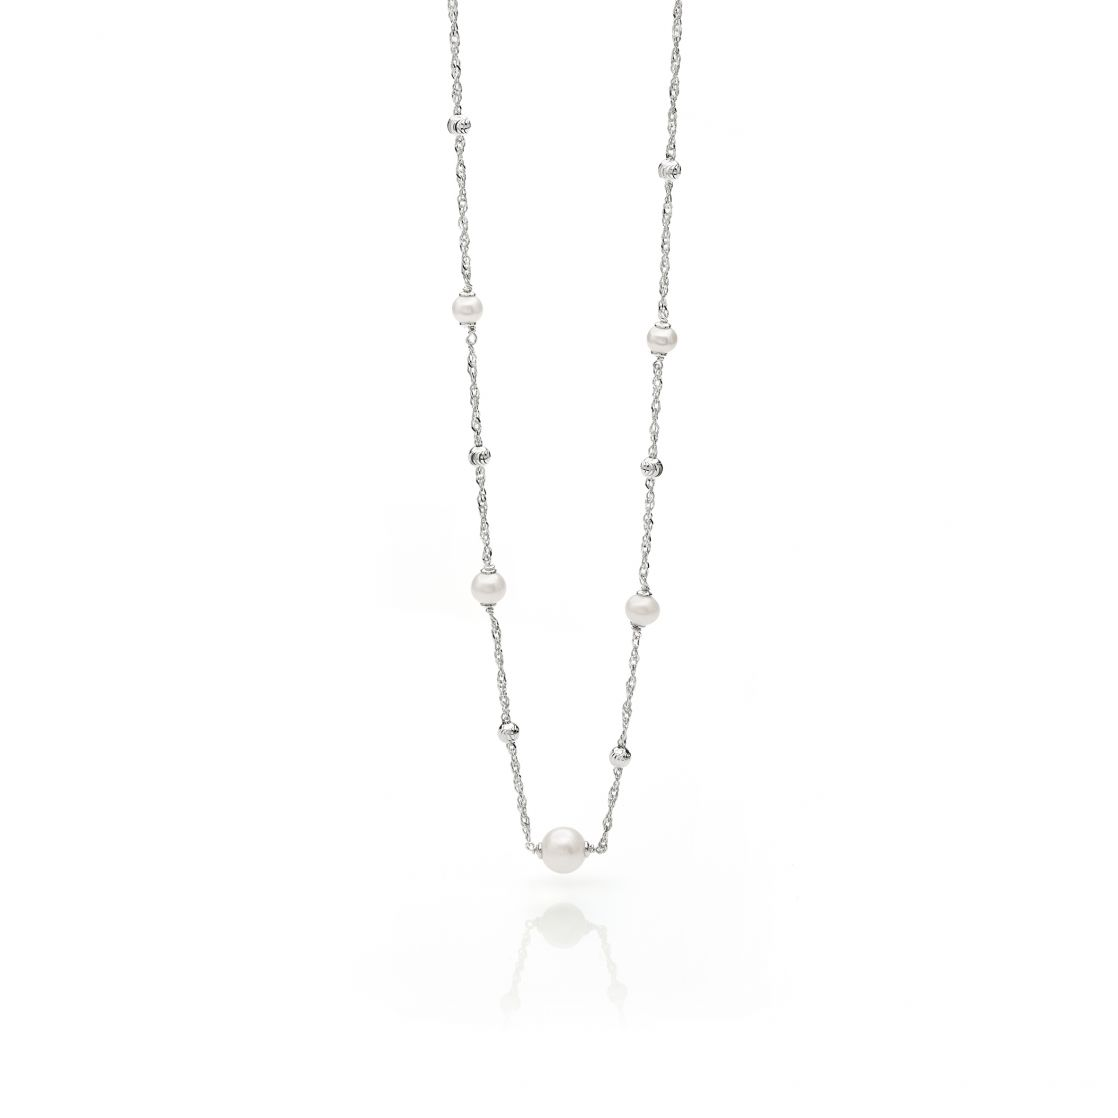 FRESHWATER PEARLS NECLACE